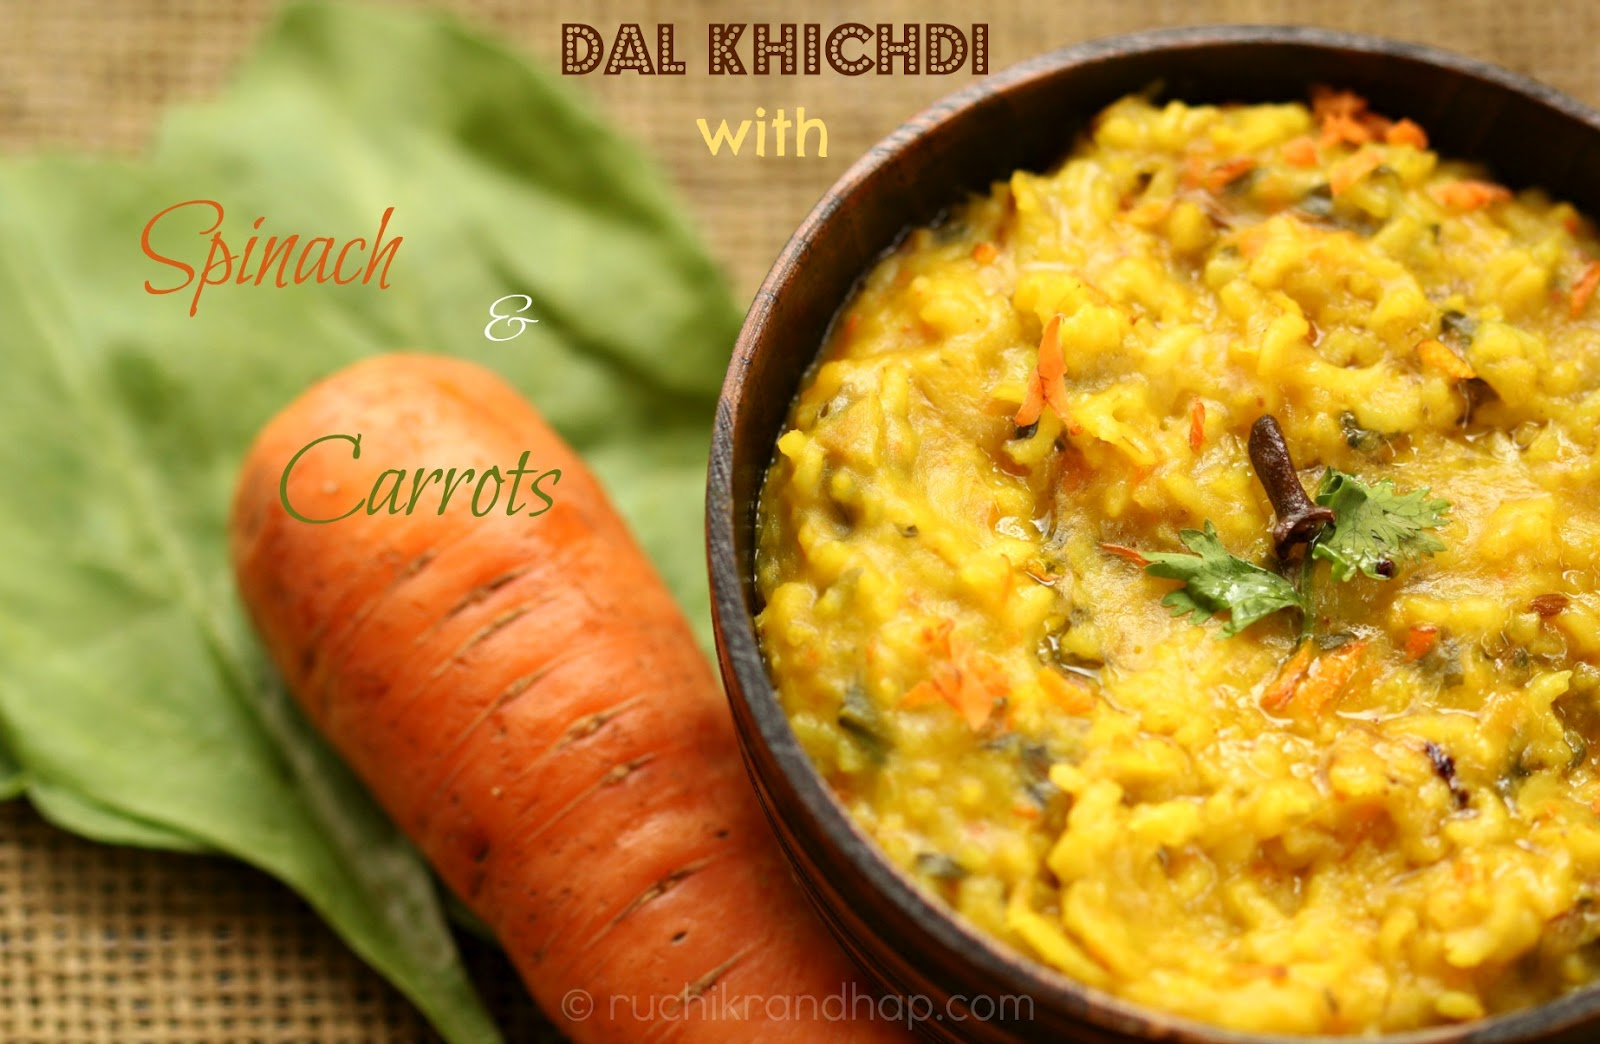 Dal Khichdi Lentil Porridge With Spinach Carrots A Complete Meal